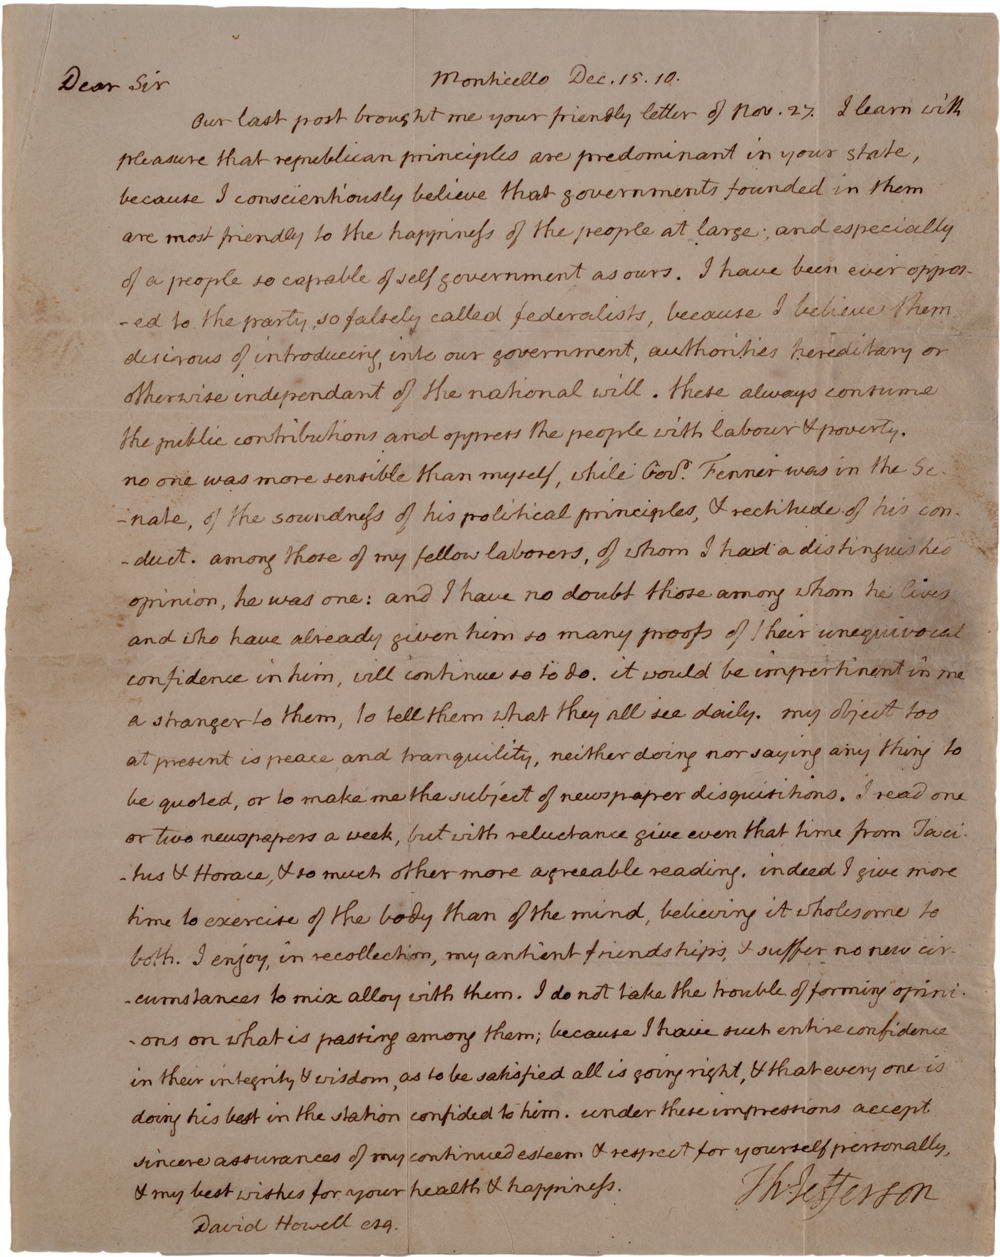 thomas jefferson s opposition to the federalists the thomas jefferson to david howell 15 1810 glc01027